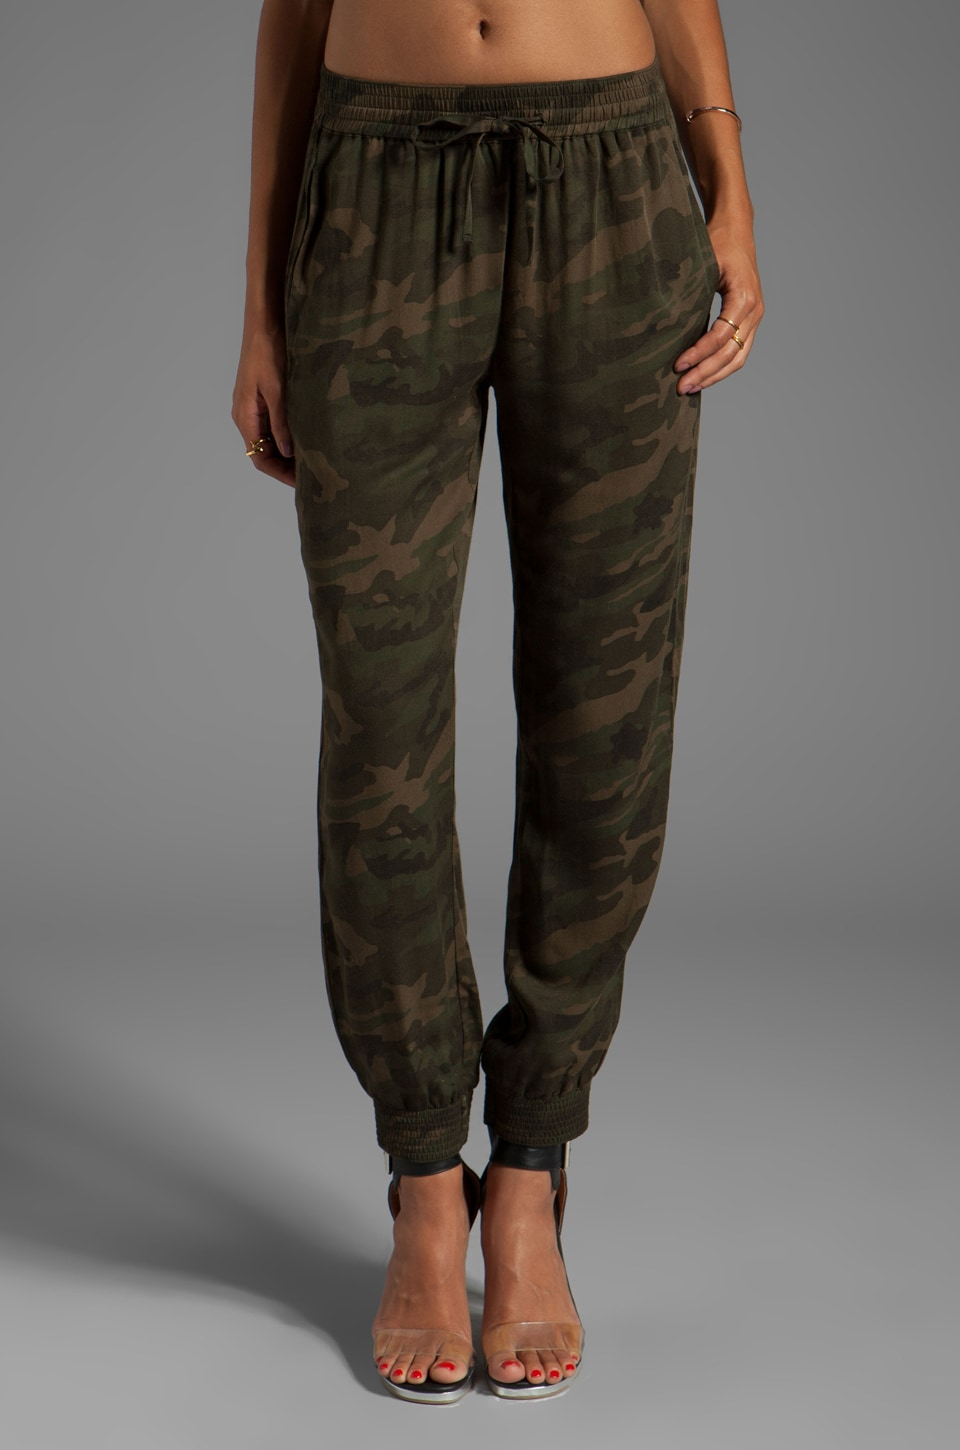 Lovers + Friends for REVOLVE Smocked Trouser in Camo